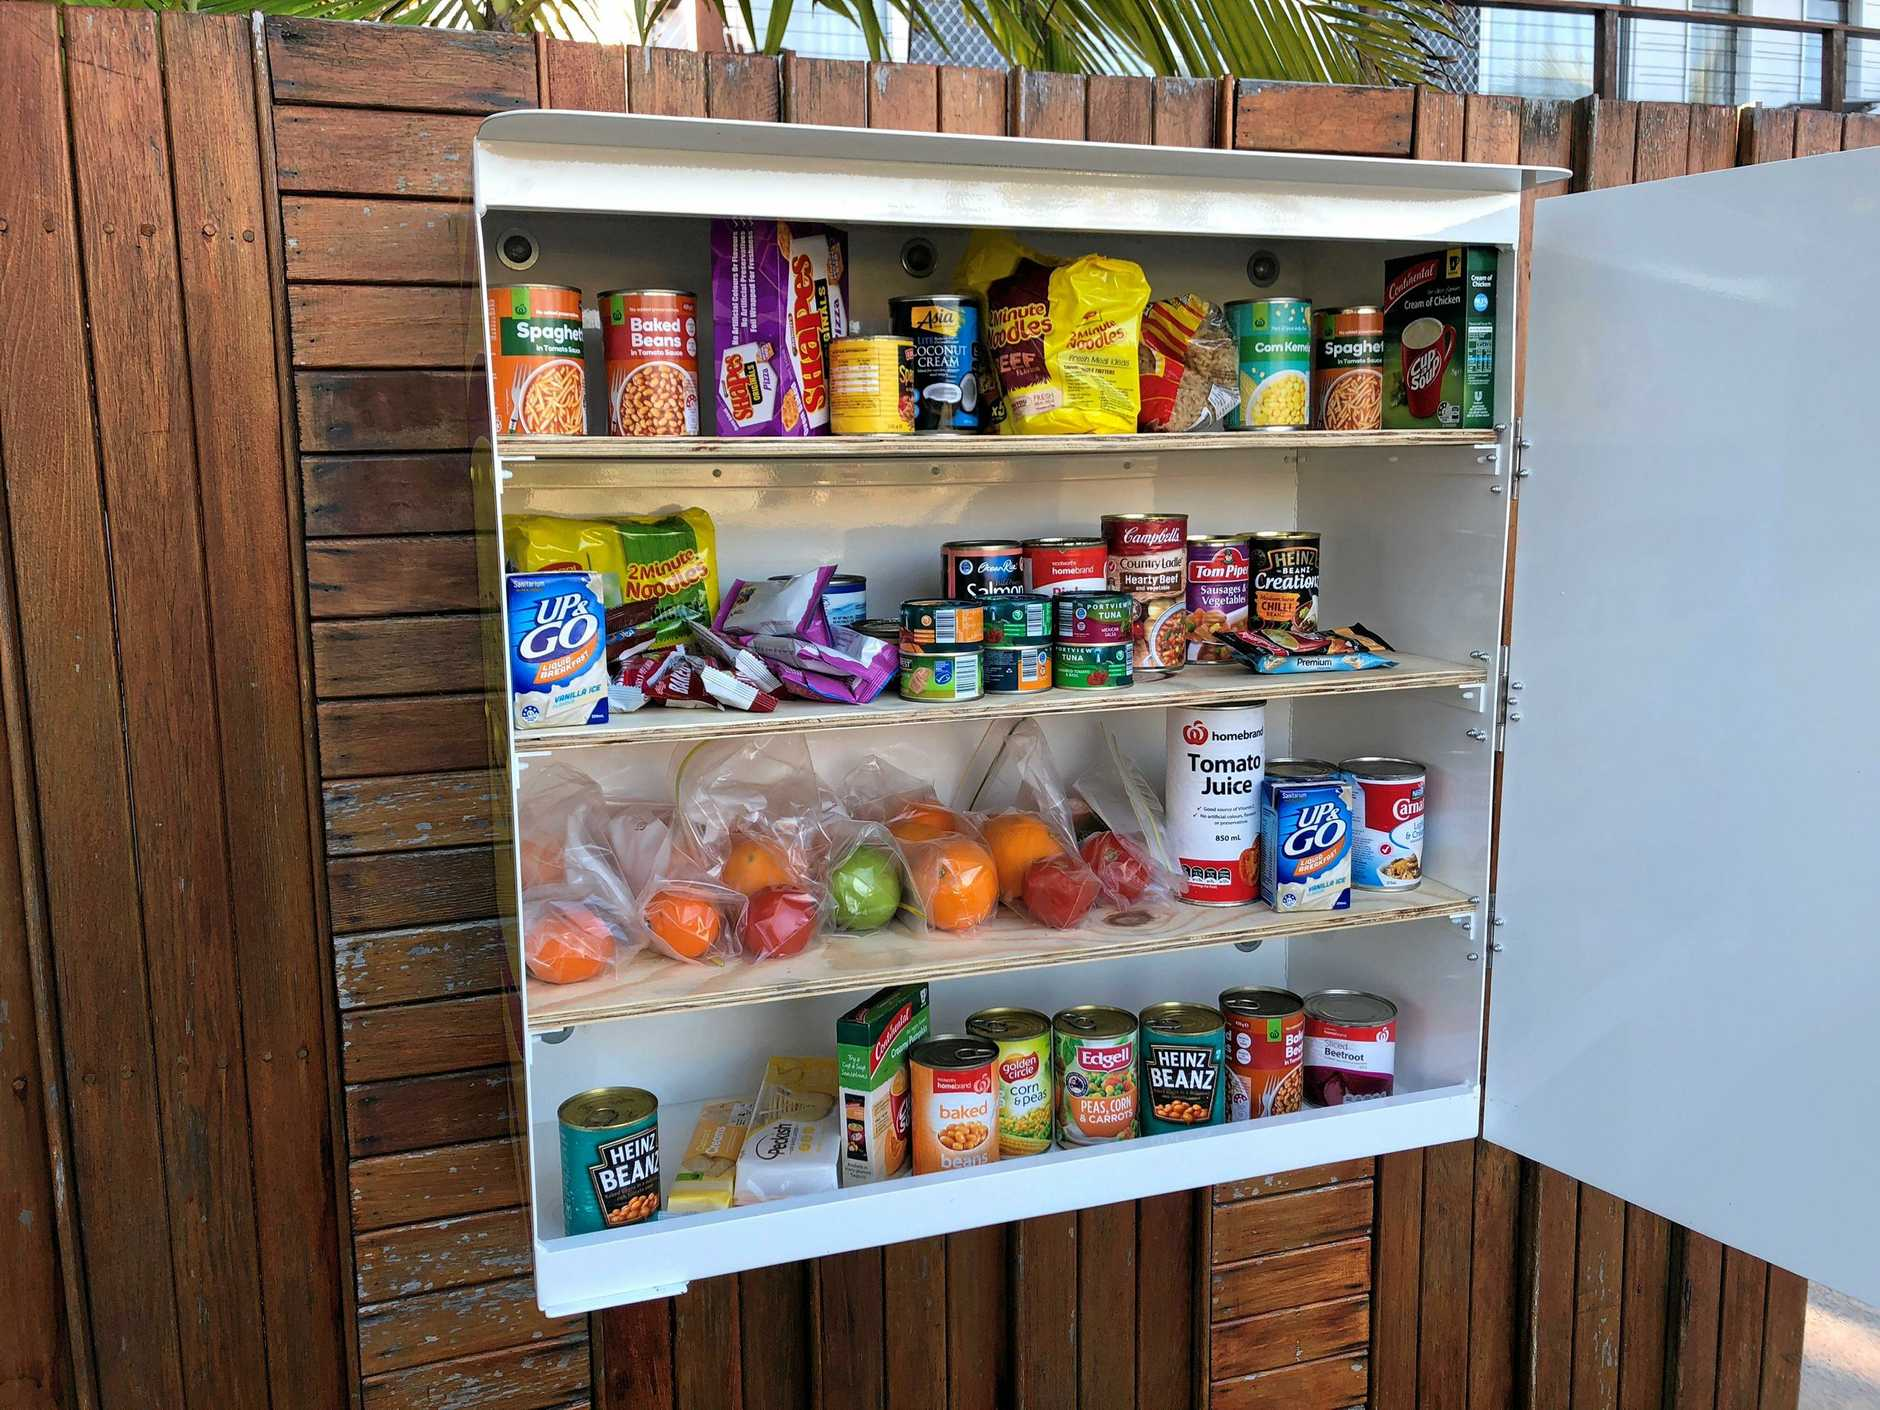 Natalie Tynan-Barnes opened the Free Little Pantry in Golden Beach over the weekend and says she's received lots of support from the community.